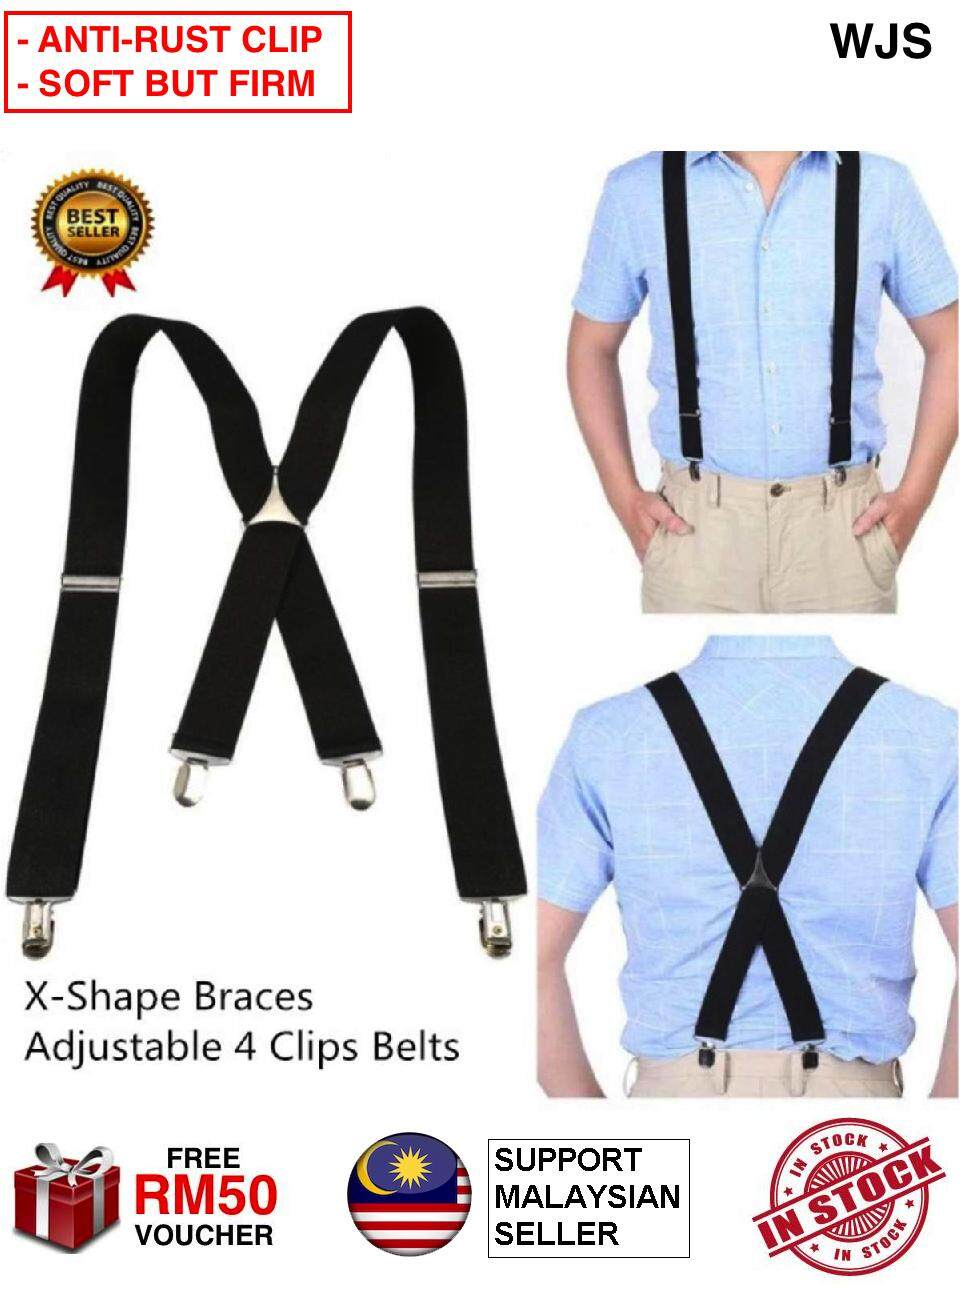 (SOFT BUT FIRM) WJS Elastic Suspender 3.5cm Width Men X-Shape Braces Y-Shape Braces Adjustable Strapper Strappers 4 Clips Belts Anti Rust Clip-on Braces Shirt Belt BLACK BROWN BEIGE RED BLUE [FREE RM 50 VOUCHER]